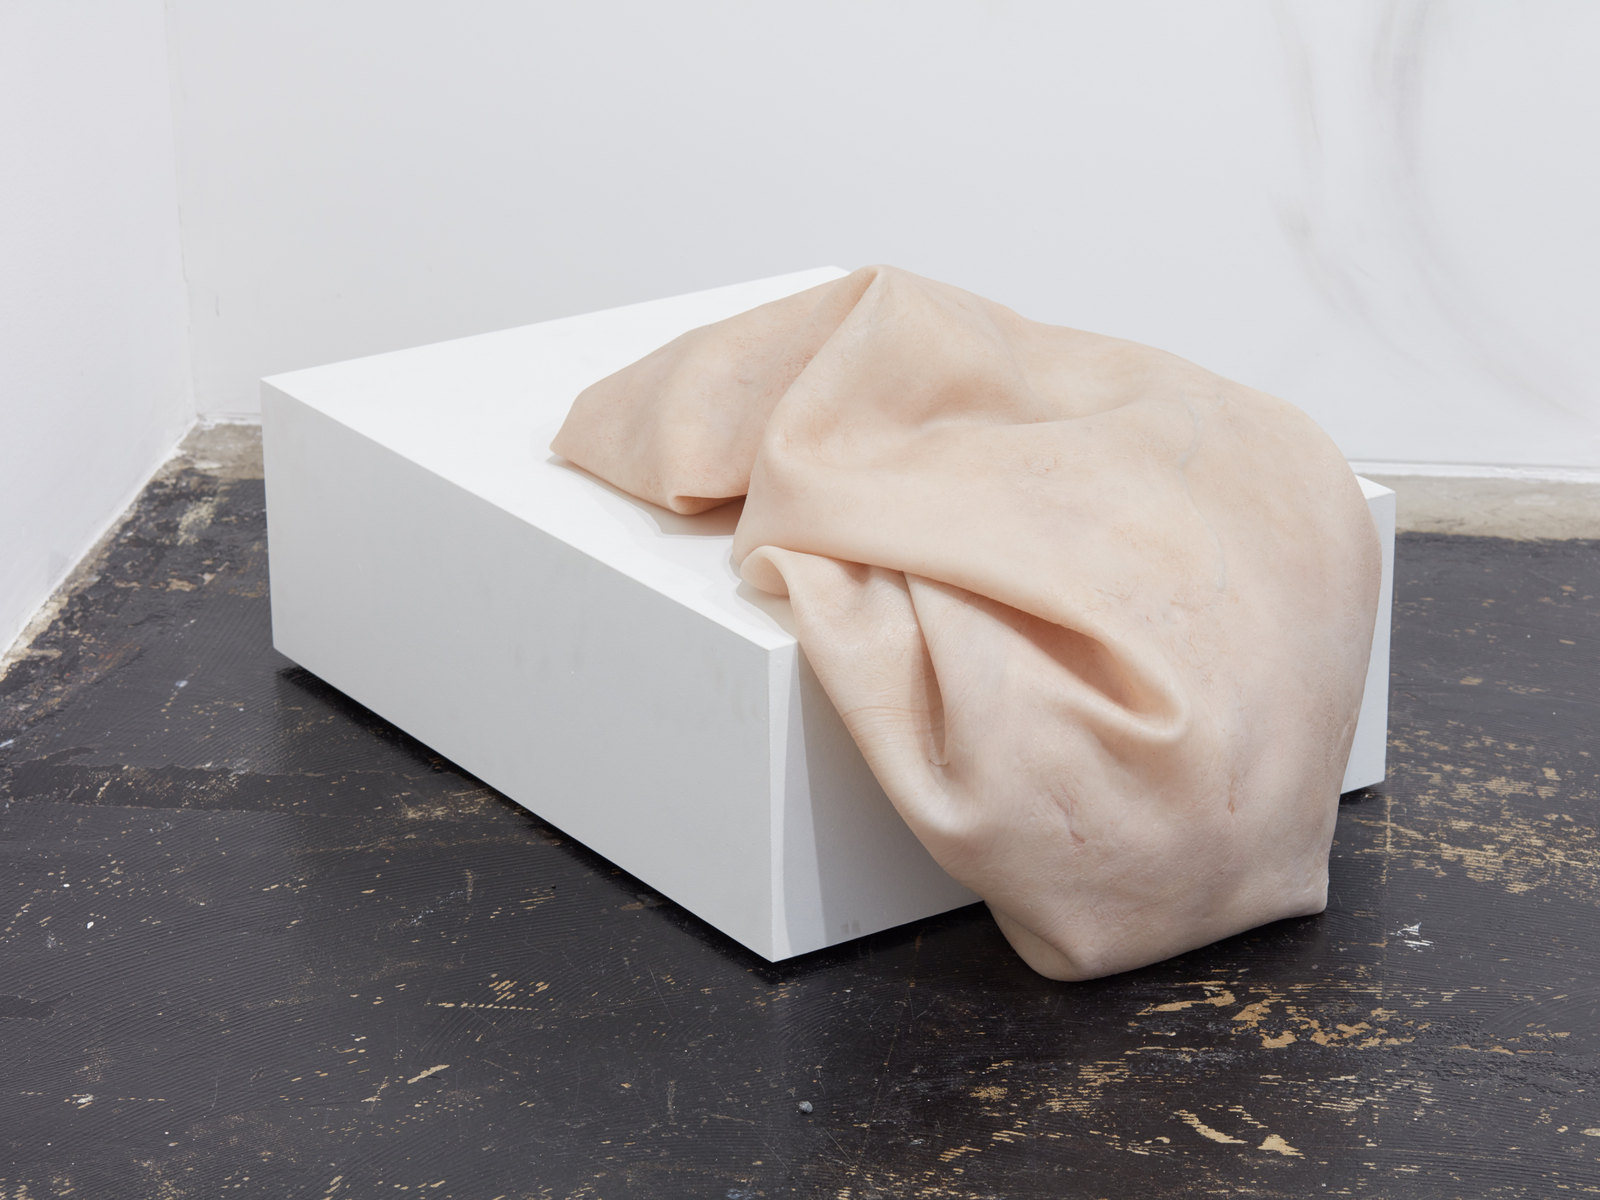 Ivana Basic, In my scarred fevered skin you see the end. In your healthy flesh I see the same, 2016, Archival silicone, 24 x 16 x 14 in, 60 x 40 x 35 cm